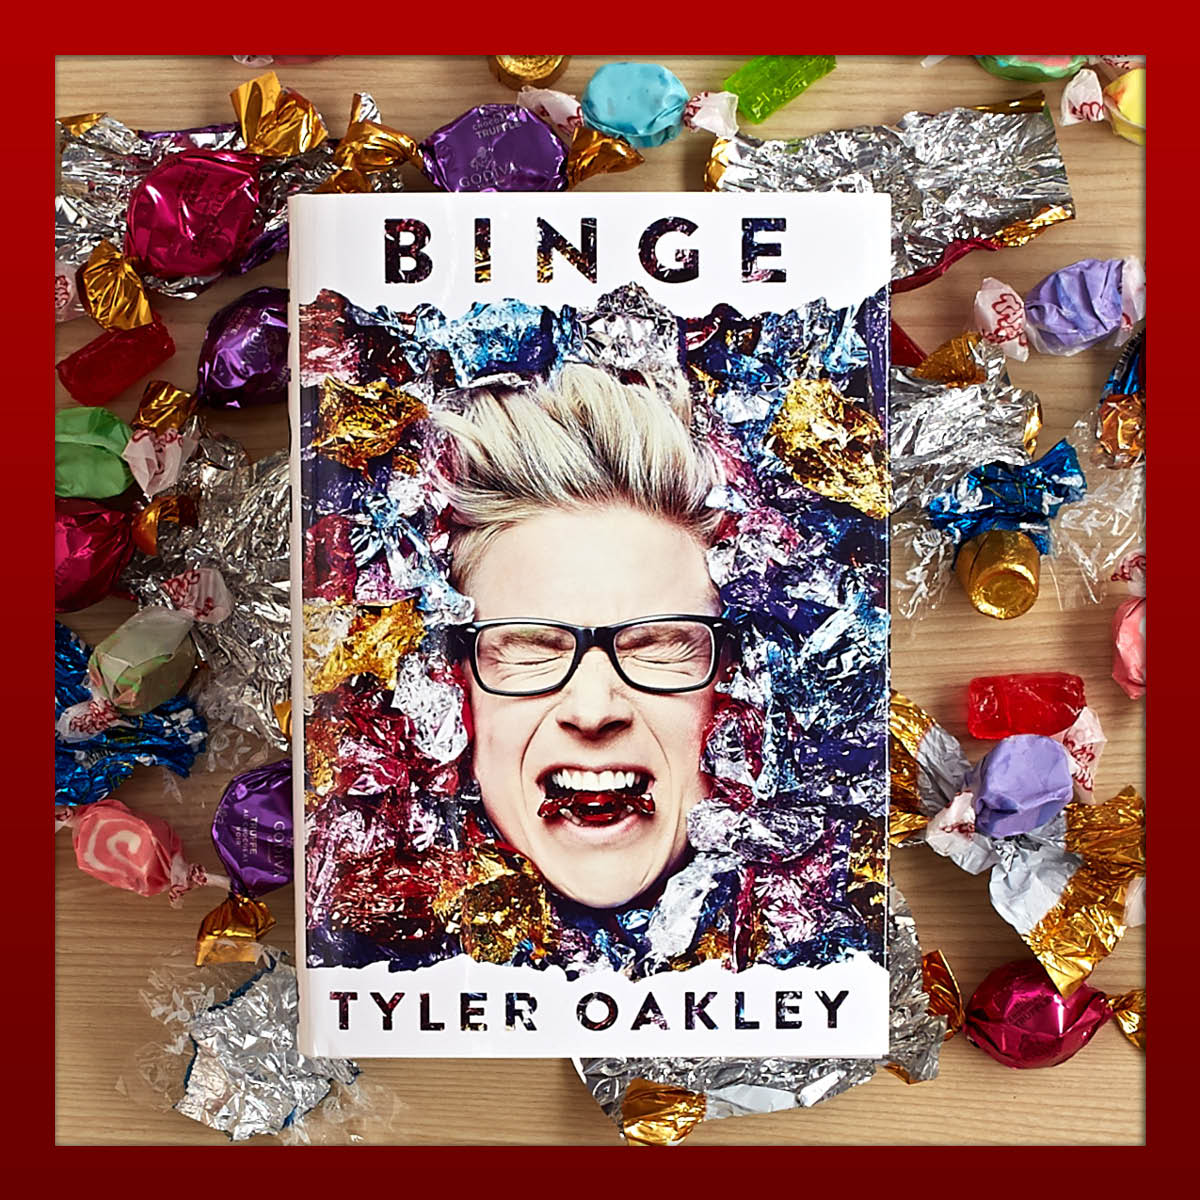 This might just be the funniest book they'll read all year #BNGiftRec @tyleroakley https://t.co/Nhky7qFMiX https://t.co/f3UaI4b1p0